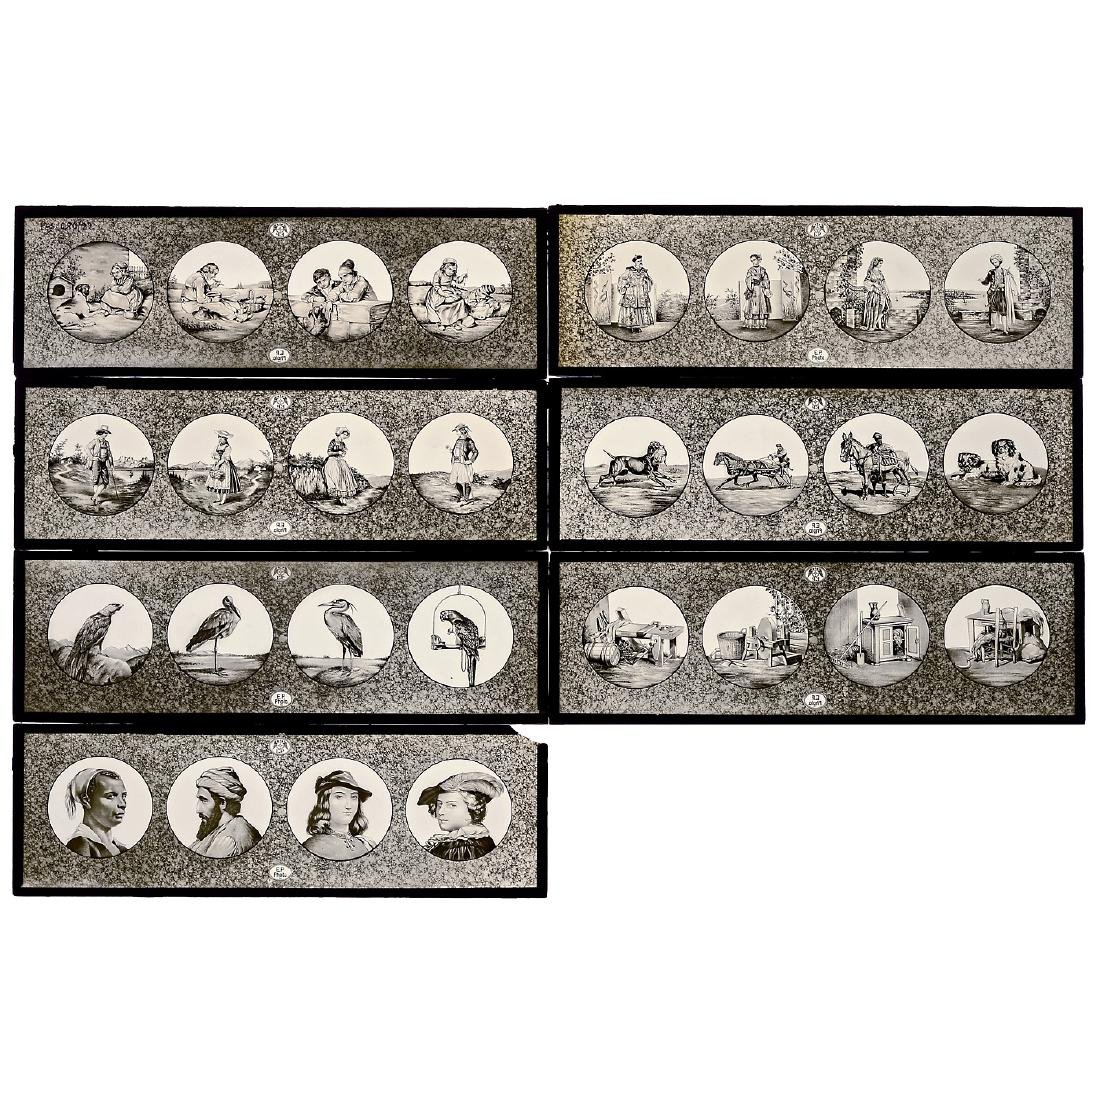 7 Photographic Lantern Slides by Plank, c. 1903